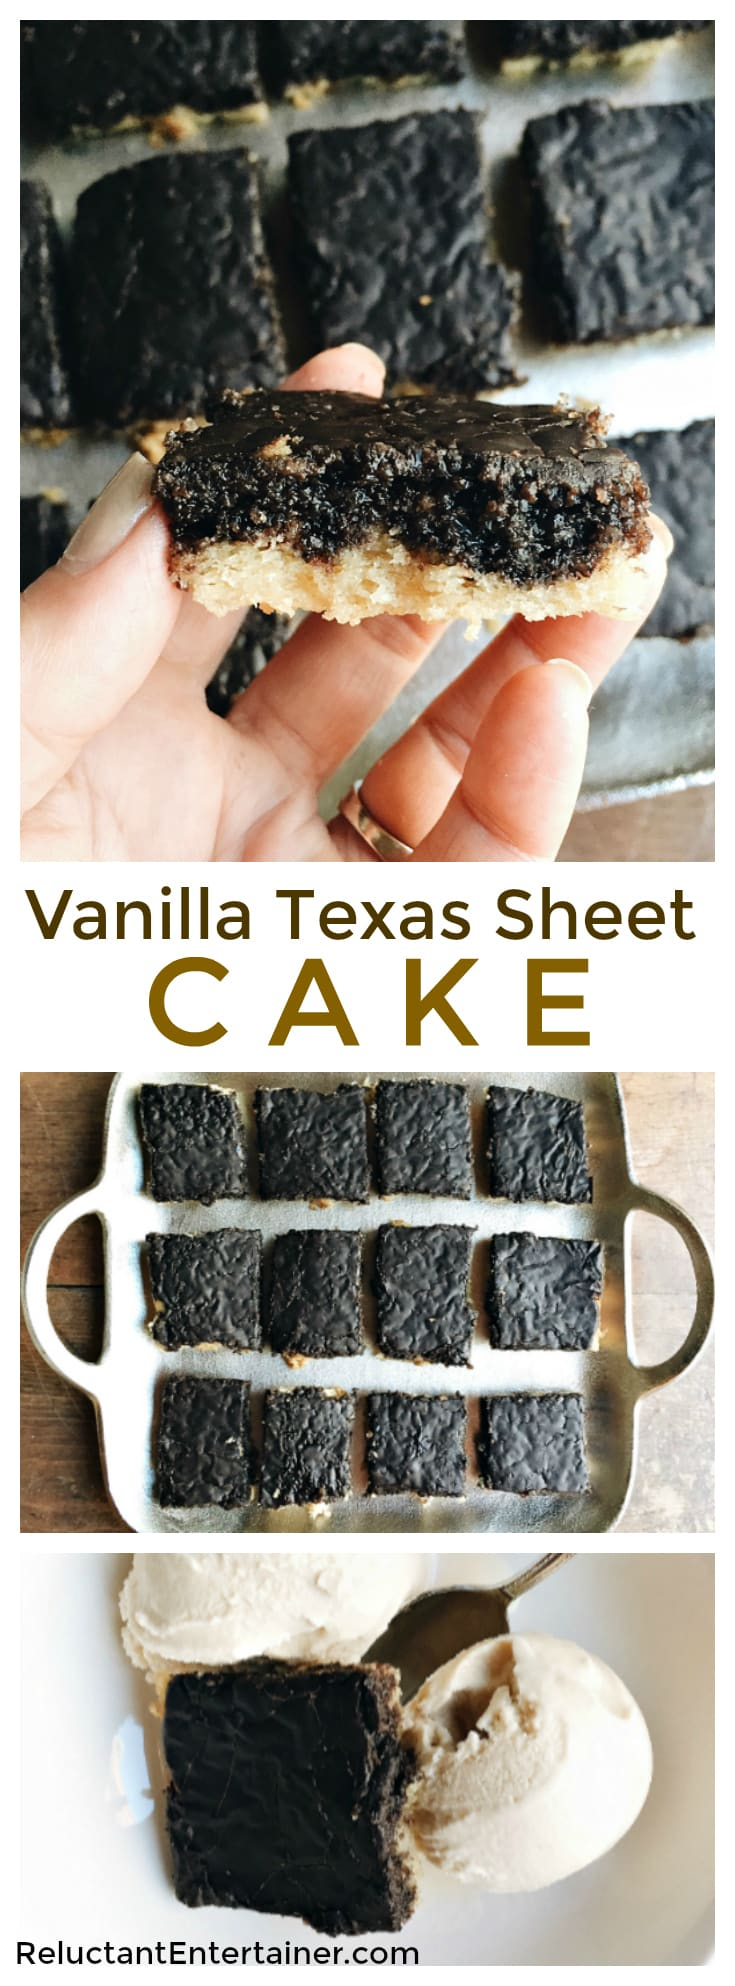 Vanilla Texas Sheet Cake Recipe feeds a crowd, and is delicious served with Old-Fashioned Homemade Vanilla Ice Cream.